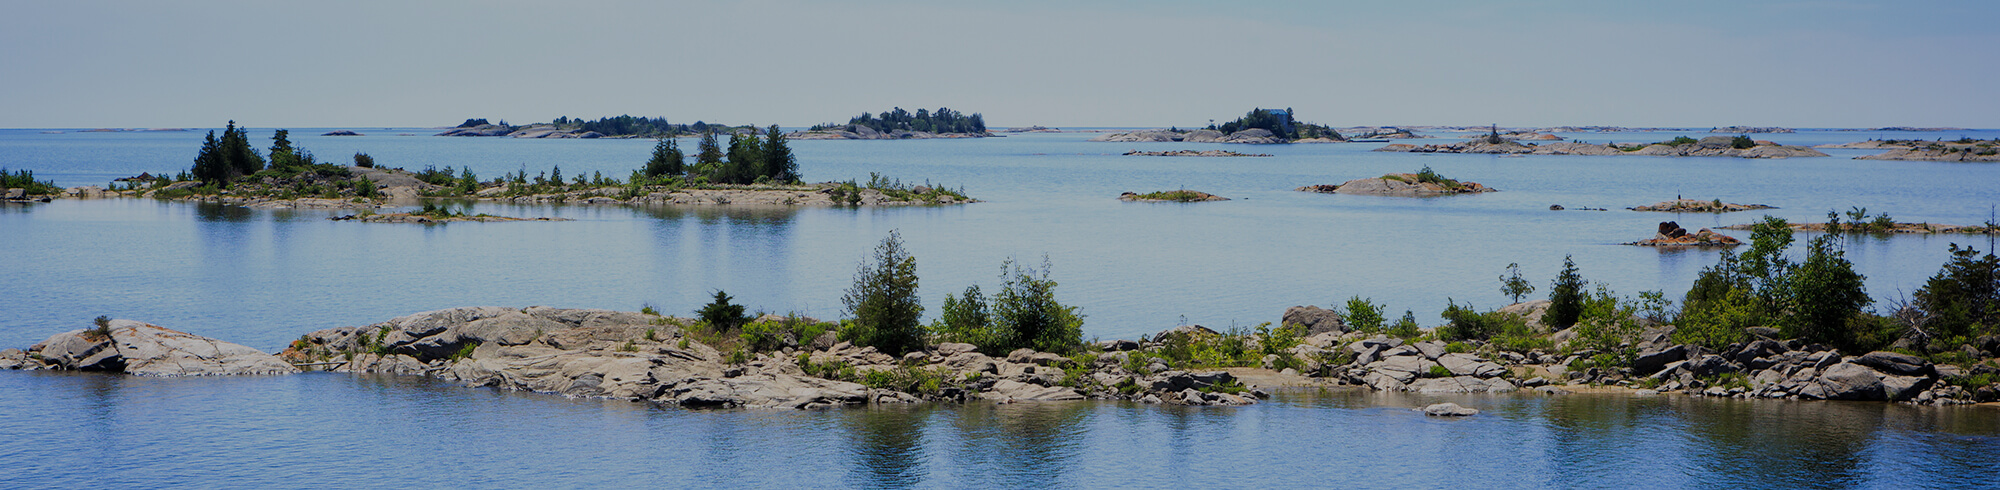 Islands in Parry Sound Ontario